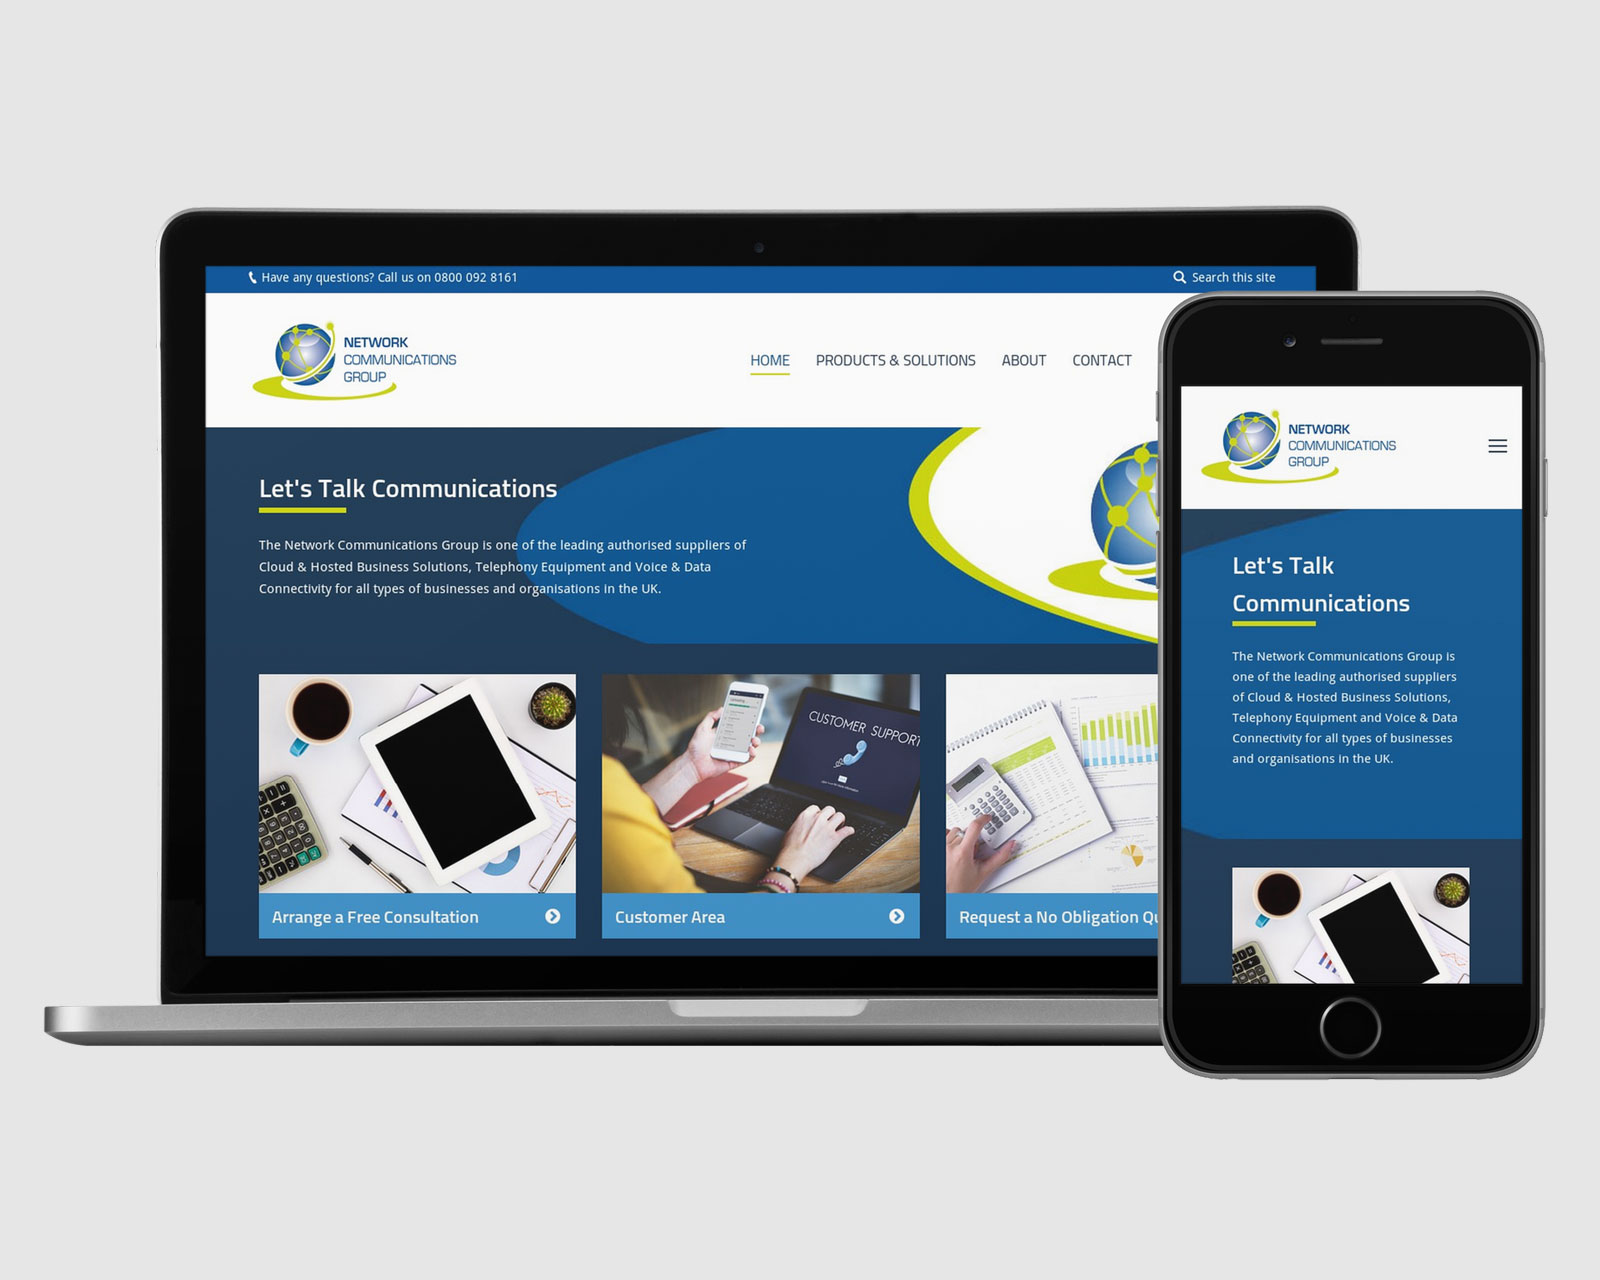 Netcomms website design on laptop and mobile